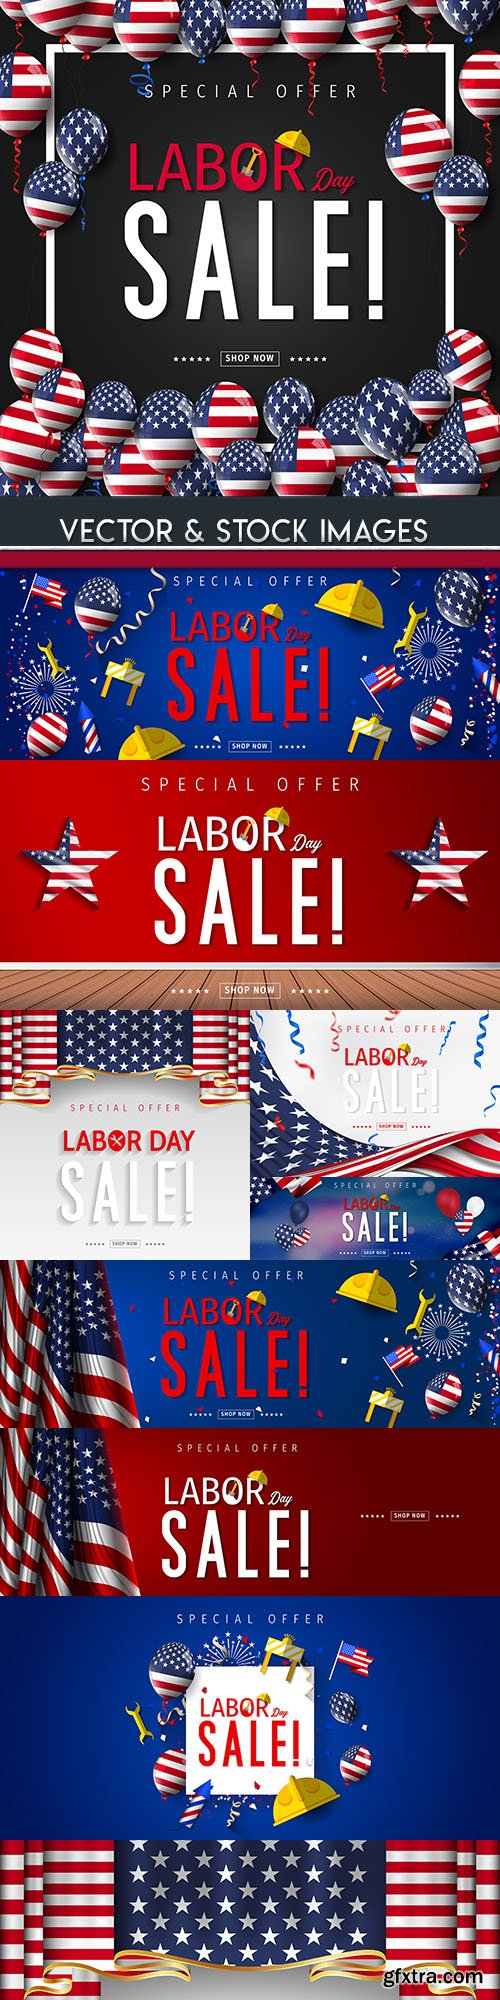 Labor Day sale illustration design collection